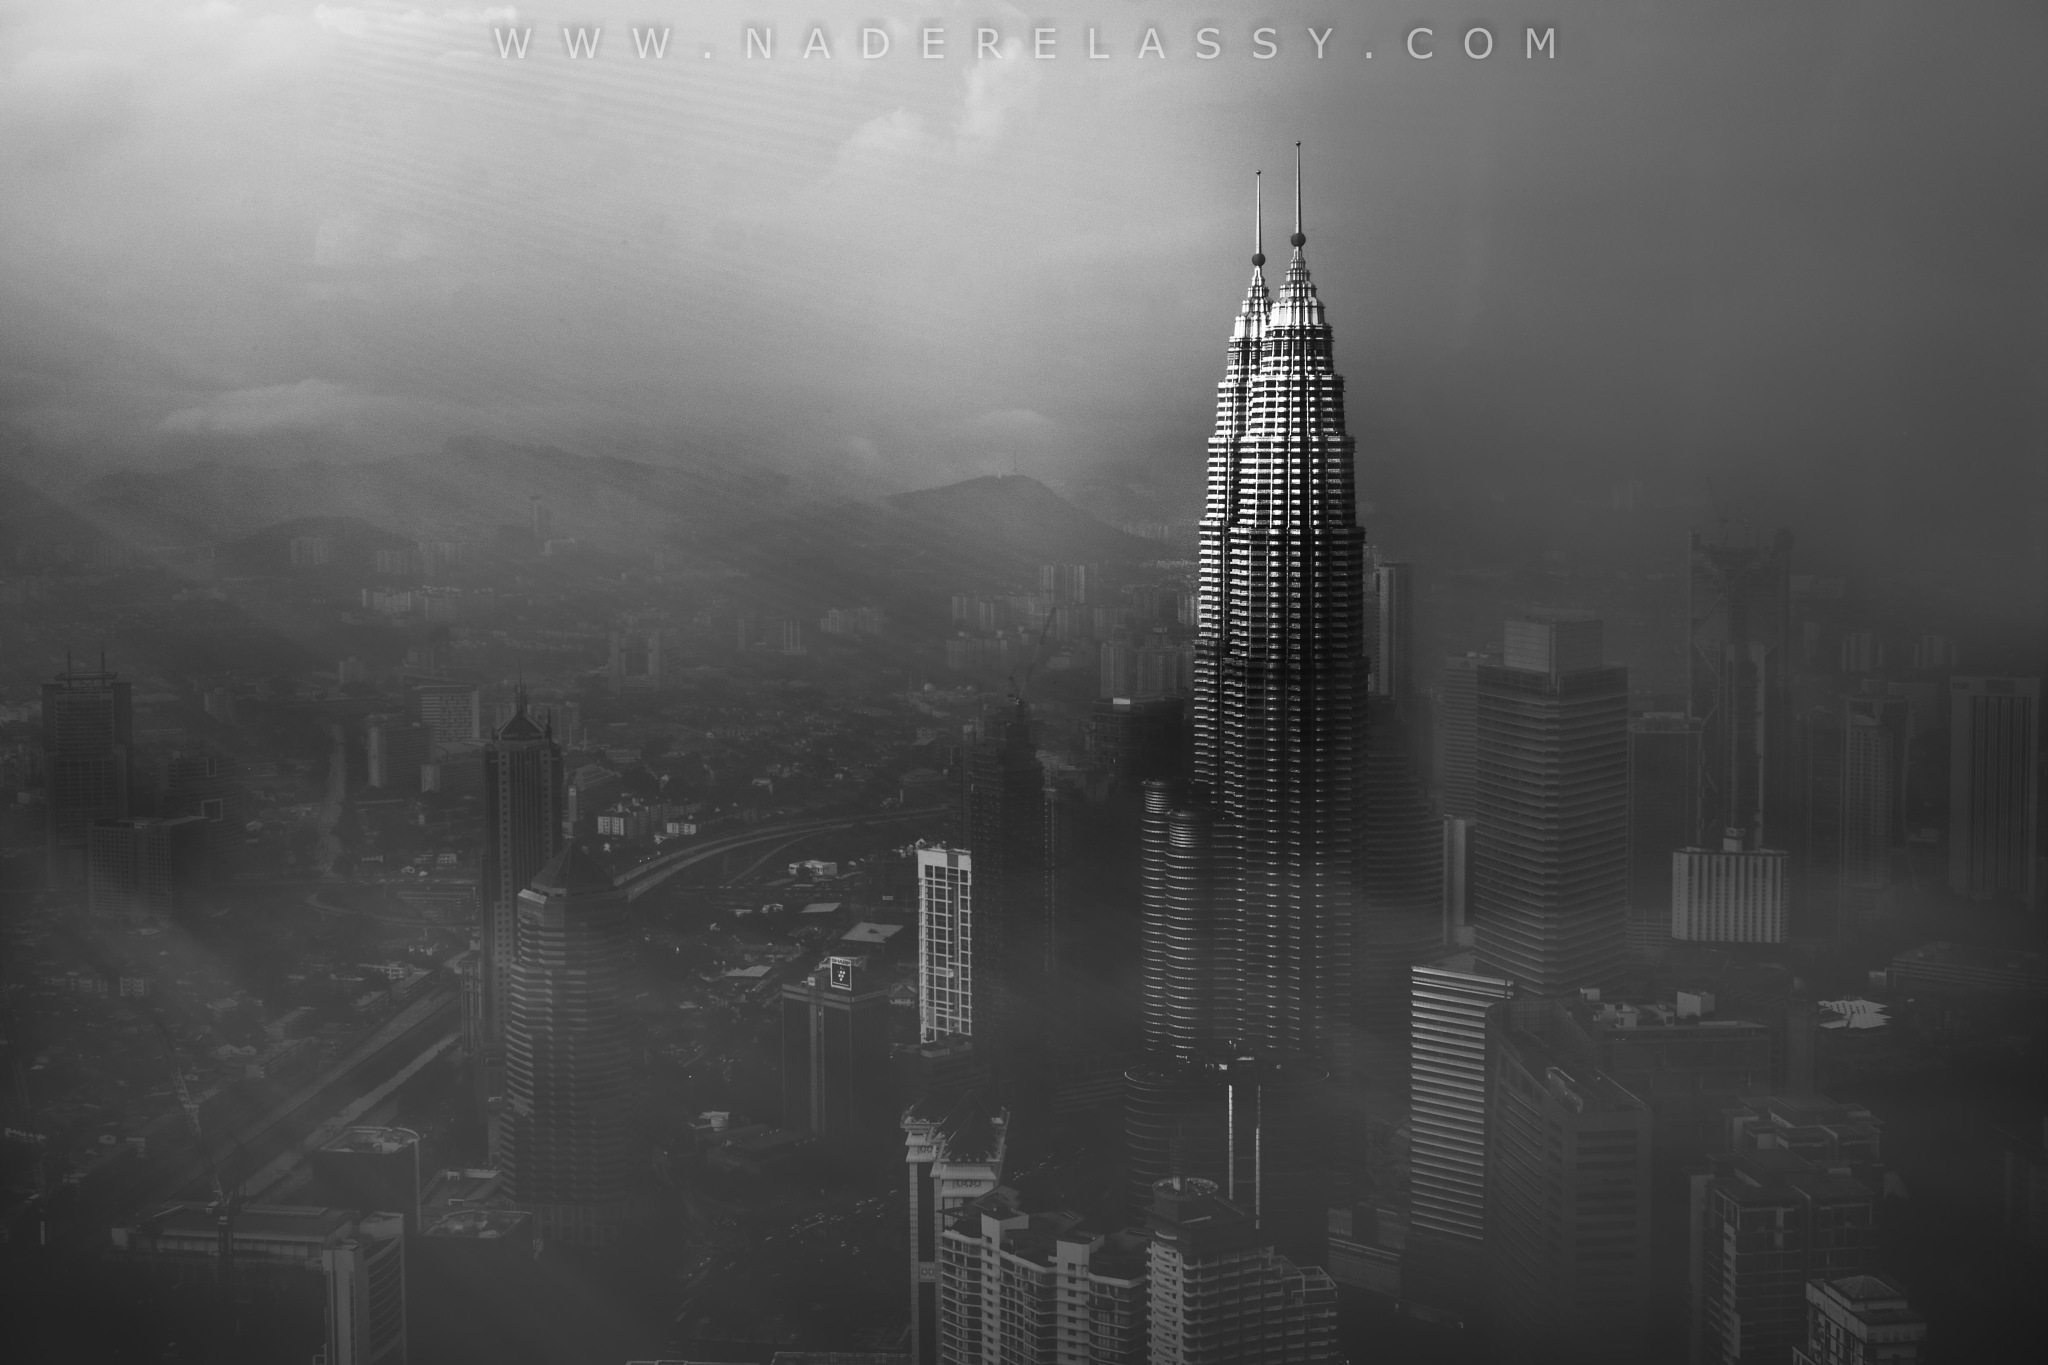 Petronas Towers in a Foggy Afternoon by Nader El Assy